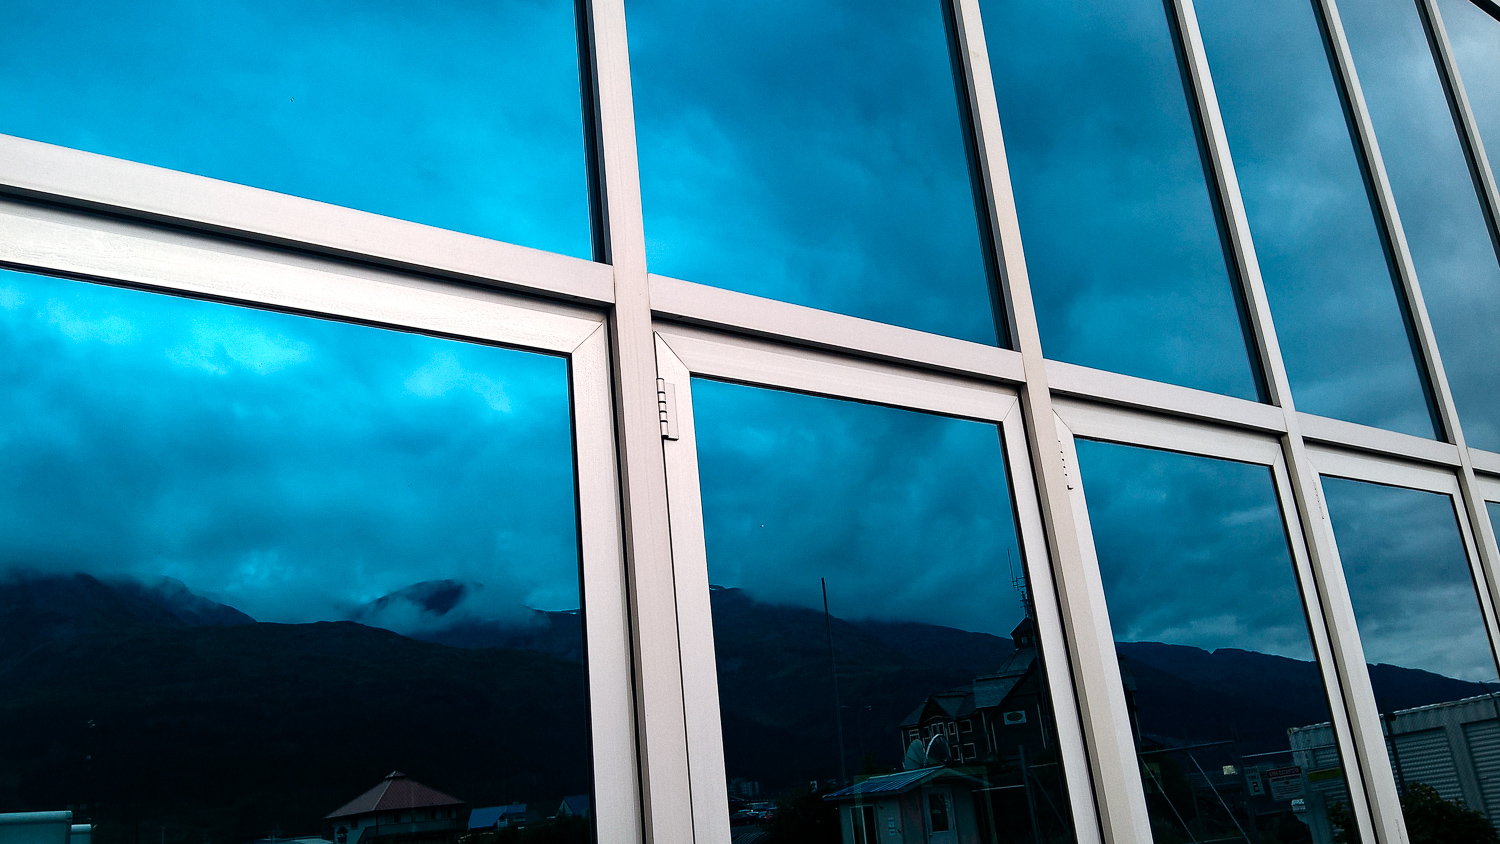 Even the reflections of the landscape are insane.(Shot with the Nokia Lumia 640 XL)